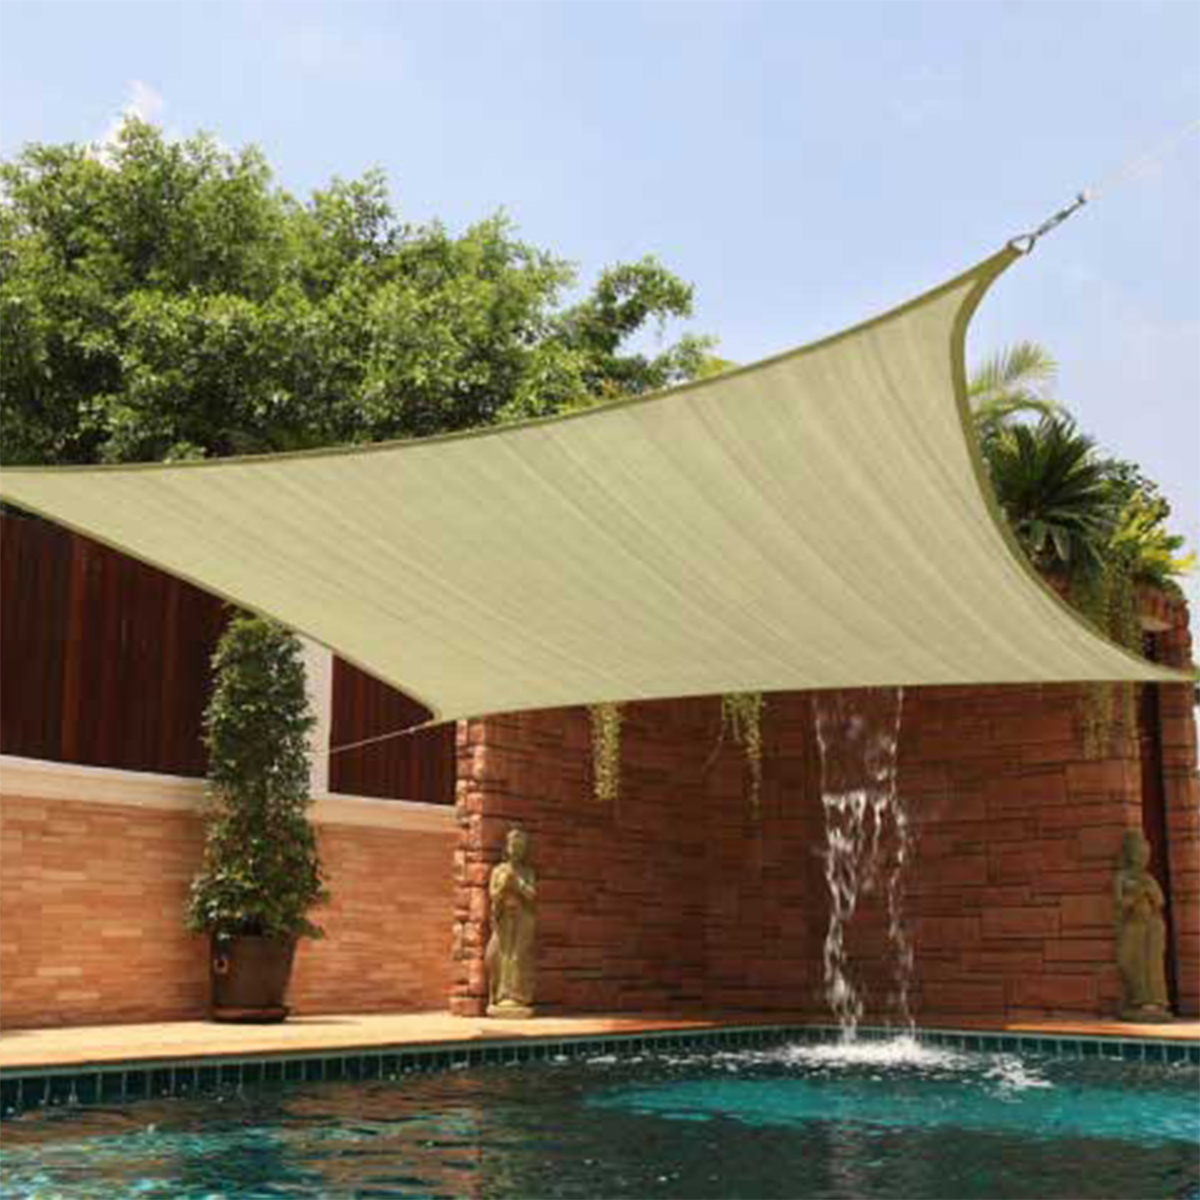 Sun Shade 18x18 Square Top Sail Beige Tan Sand For Deck